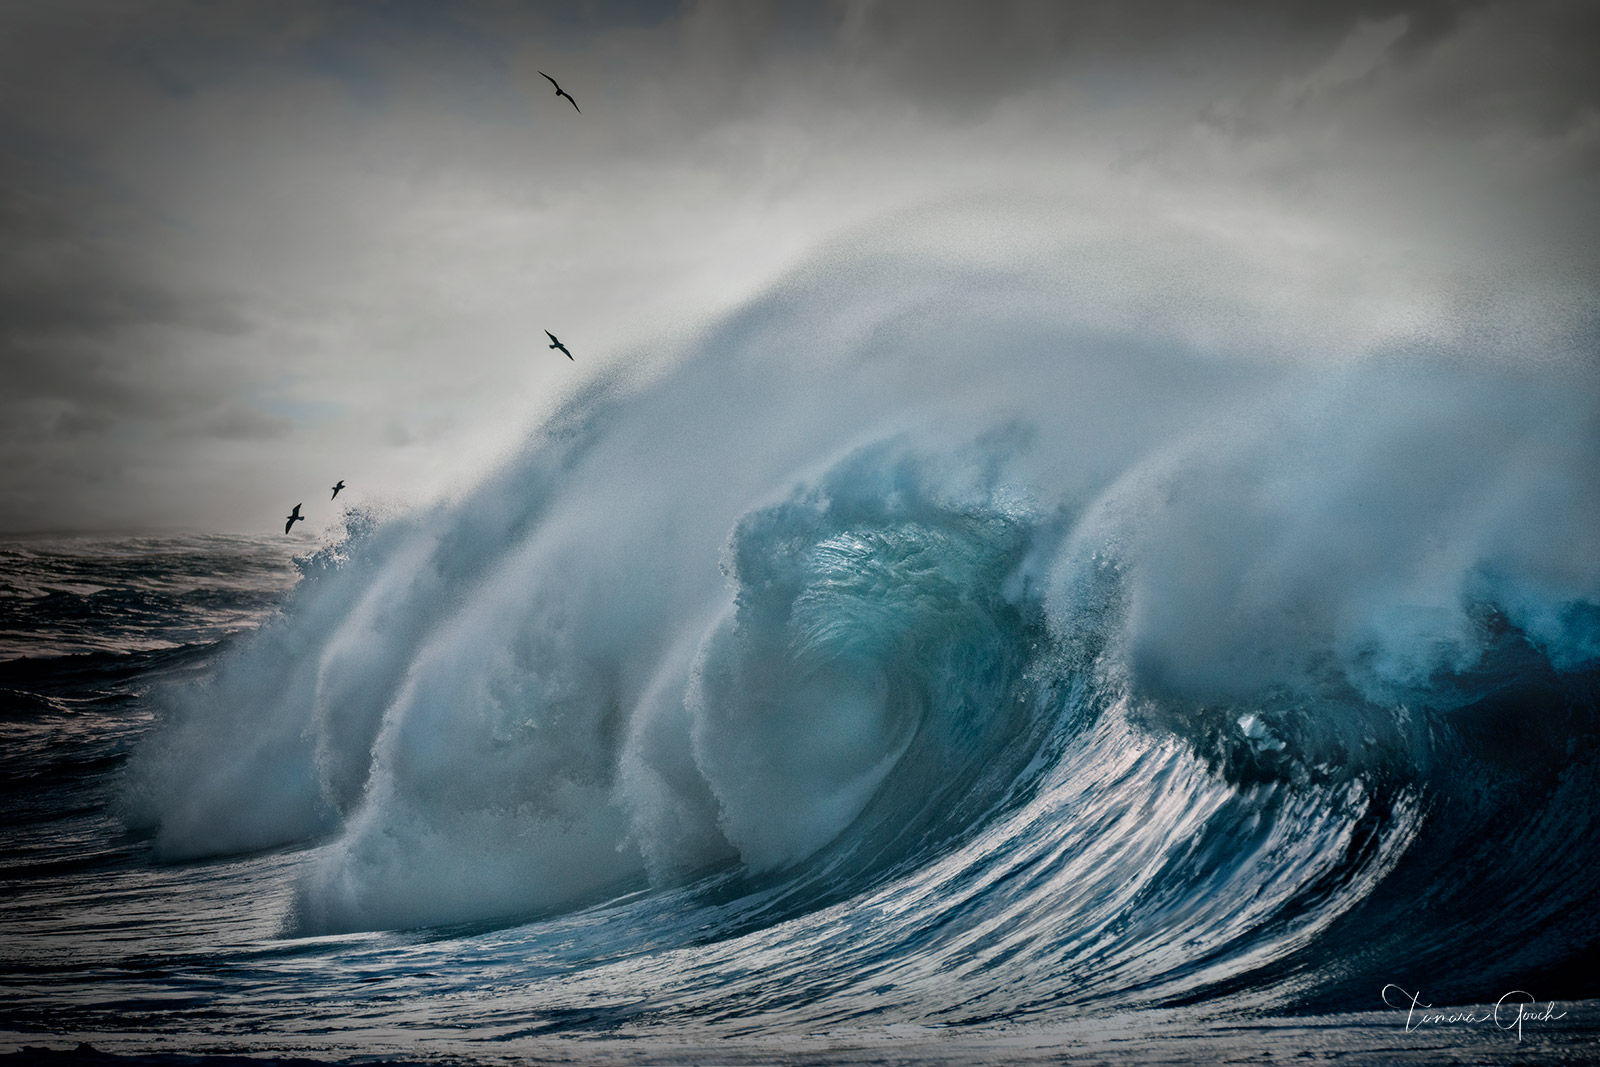 Limited Edition Print of 50 Giant crashing waves are mesmerizing. You can easily become hypnotized and captivated by the power...